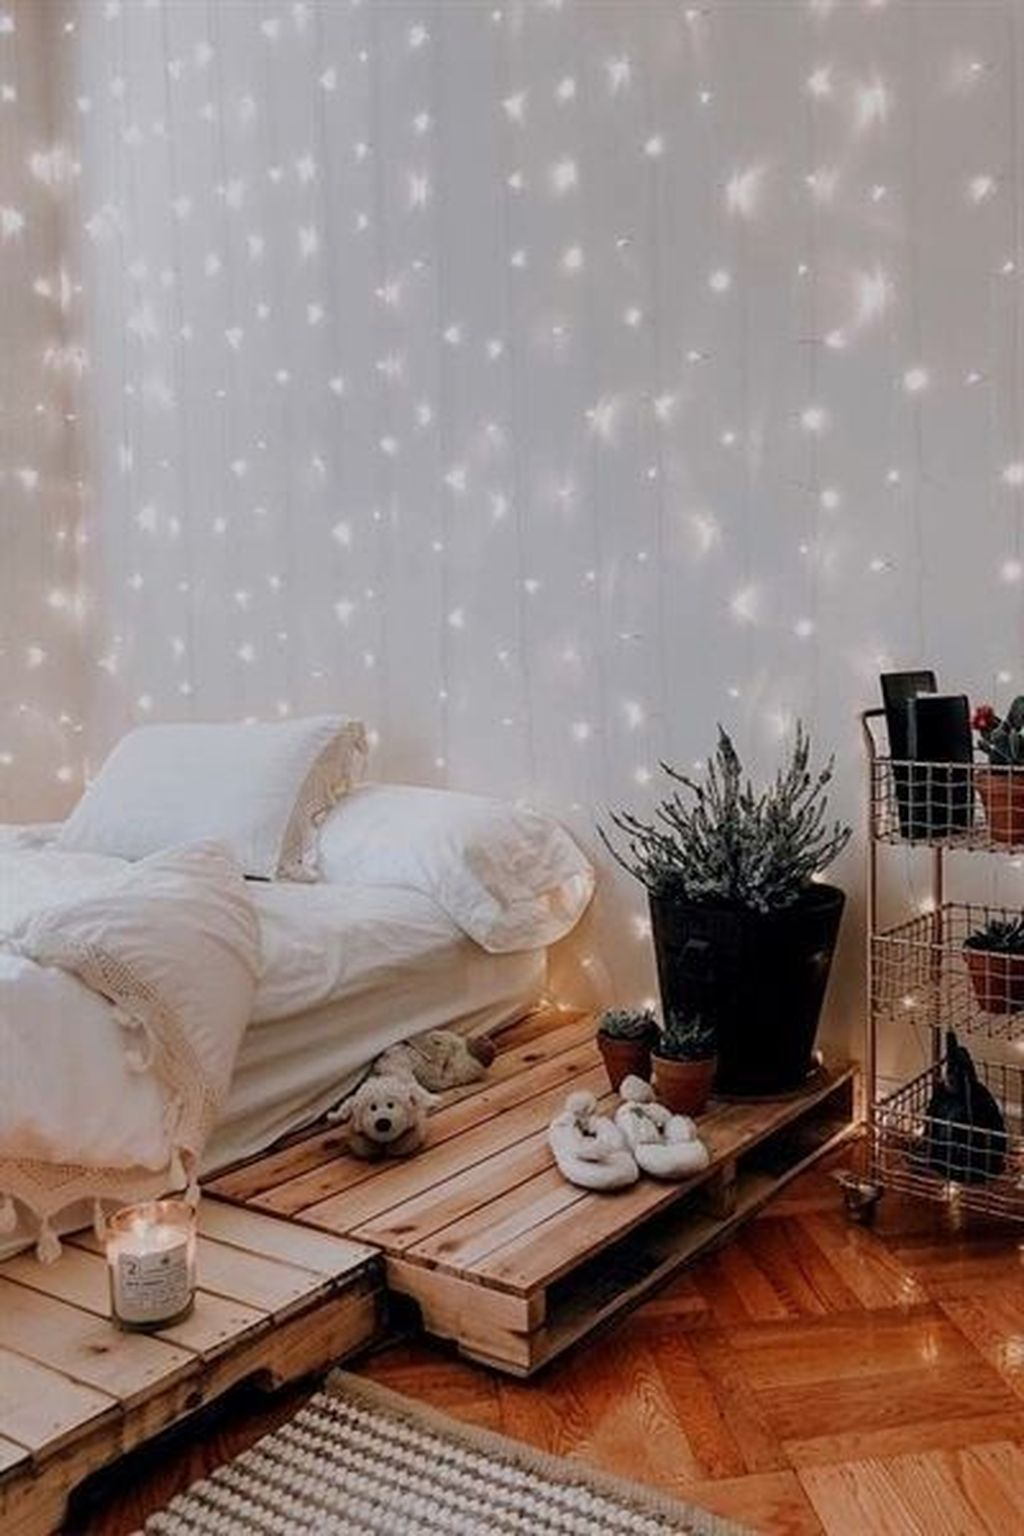 40 Cute Bedroom Ideas For Small Rooms - HOOMDESIGN